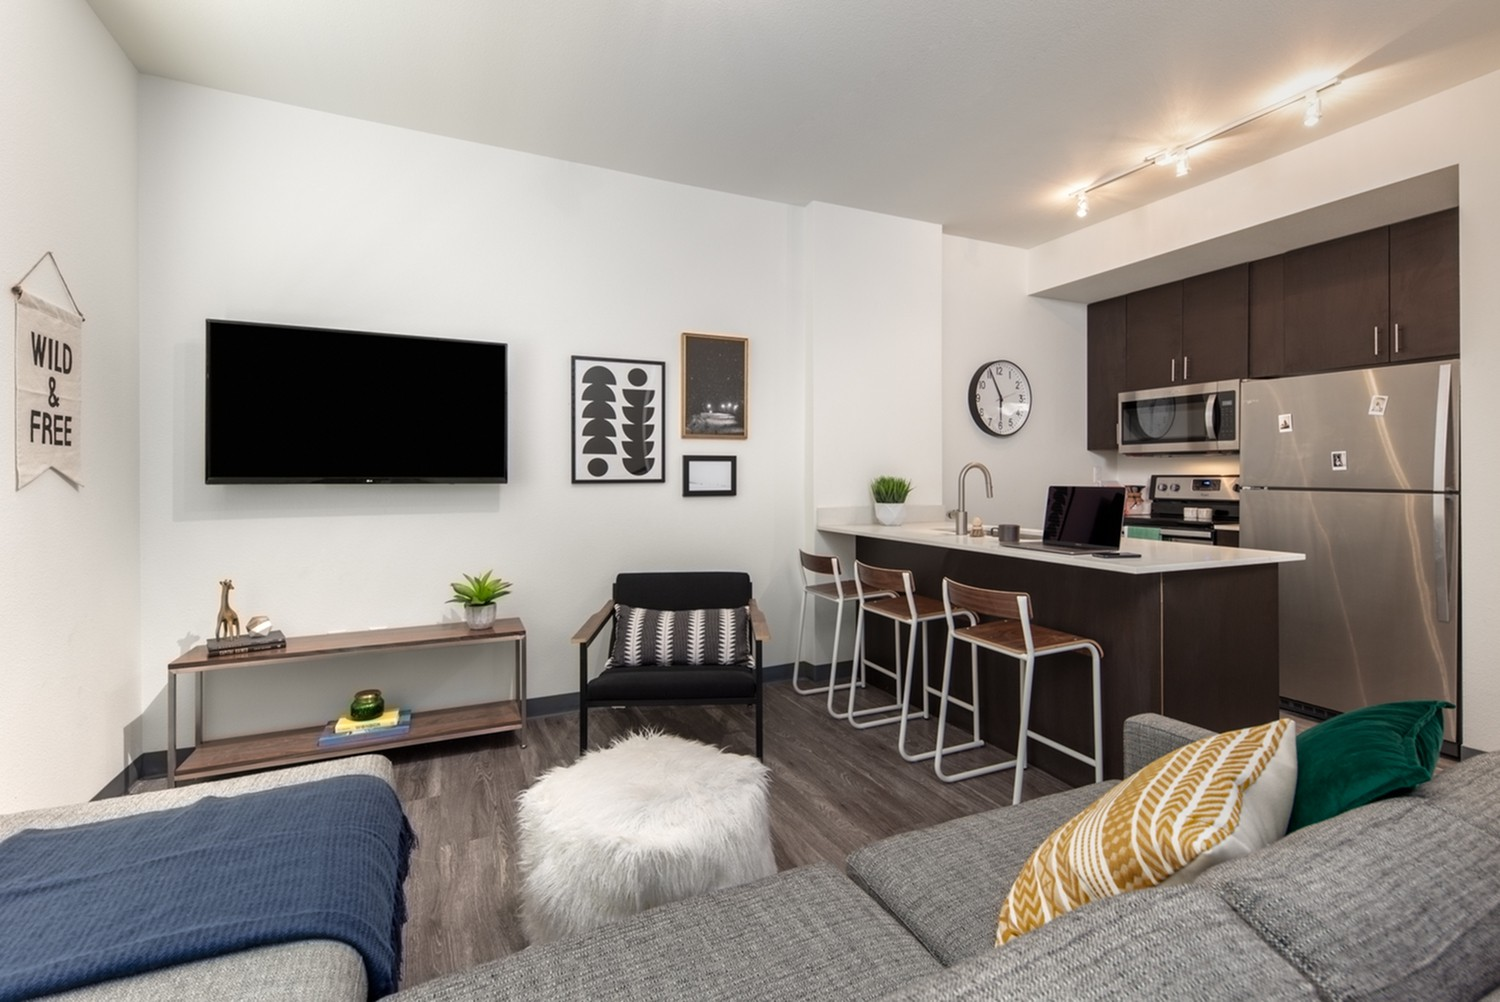 Apartments Near University of Idaho Student Housing - Identity Moscow for University of Idaho Students in Moscow, ID